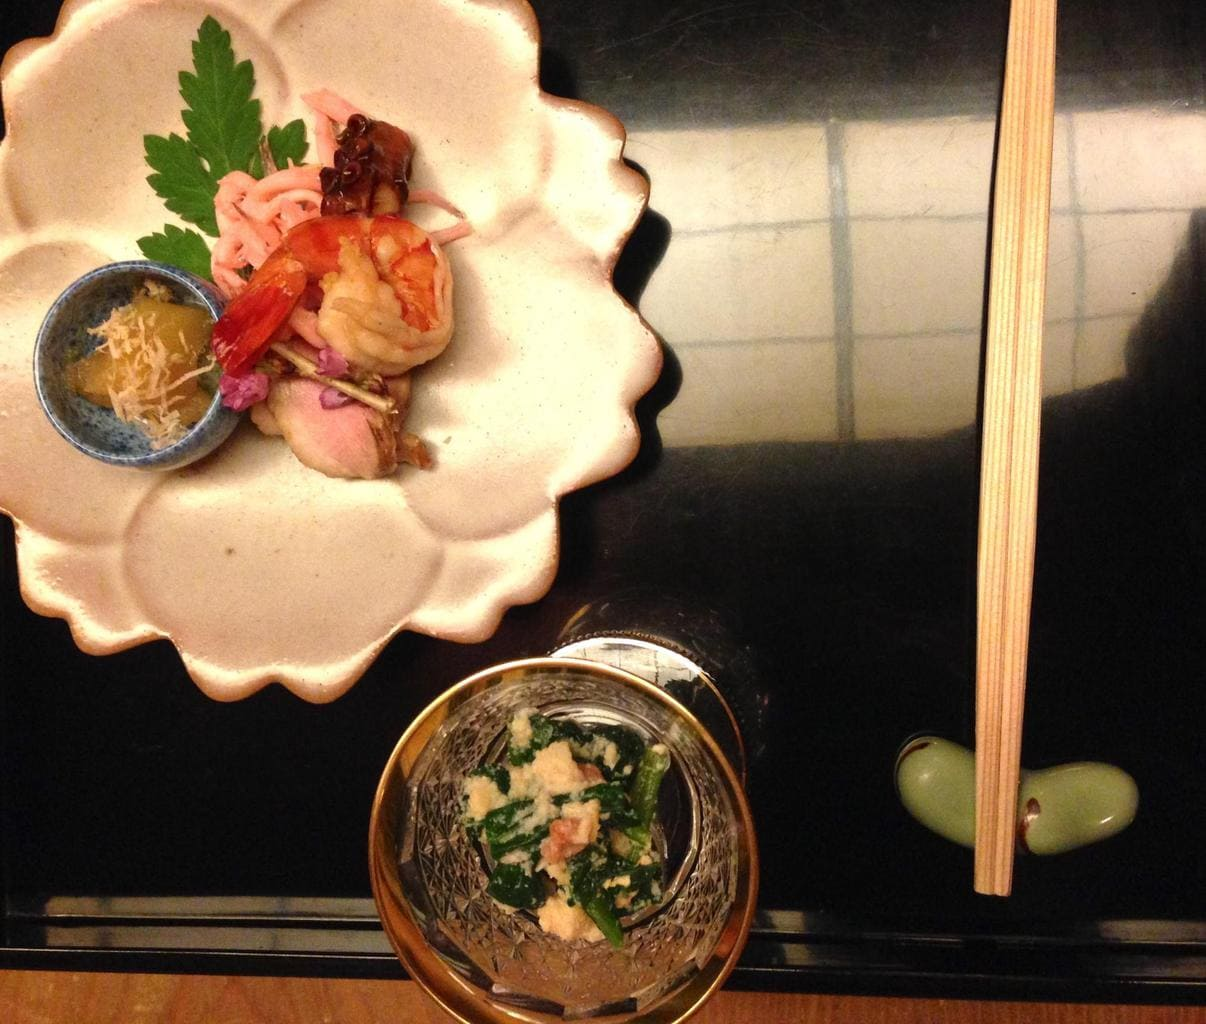 Part of a kaiseki meal